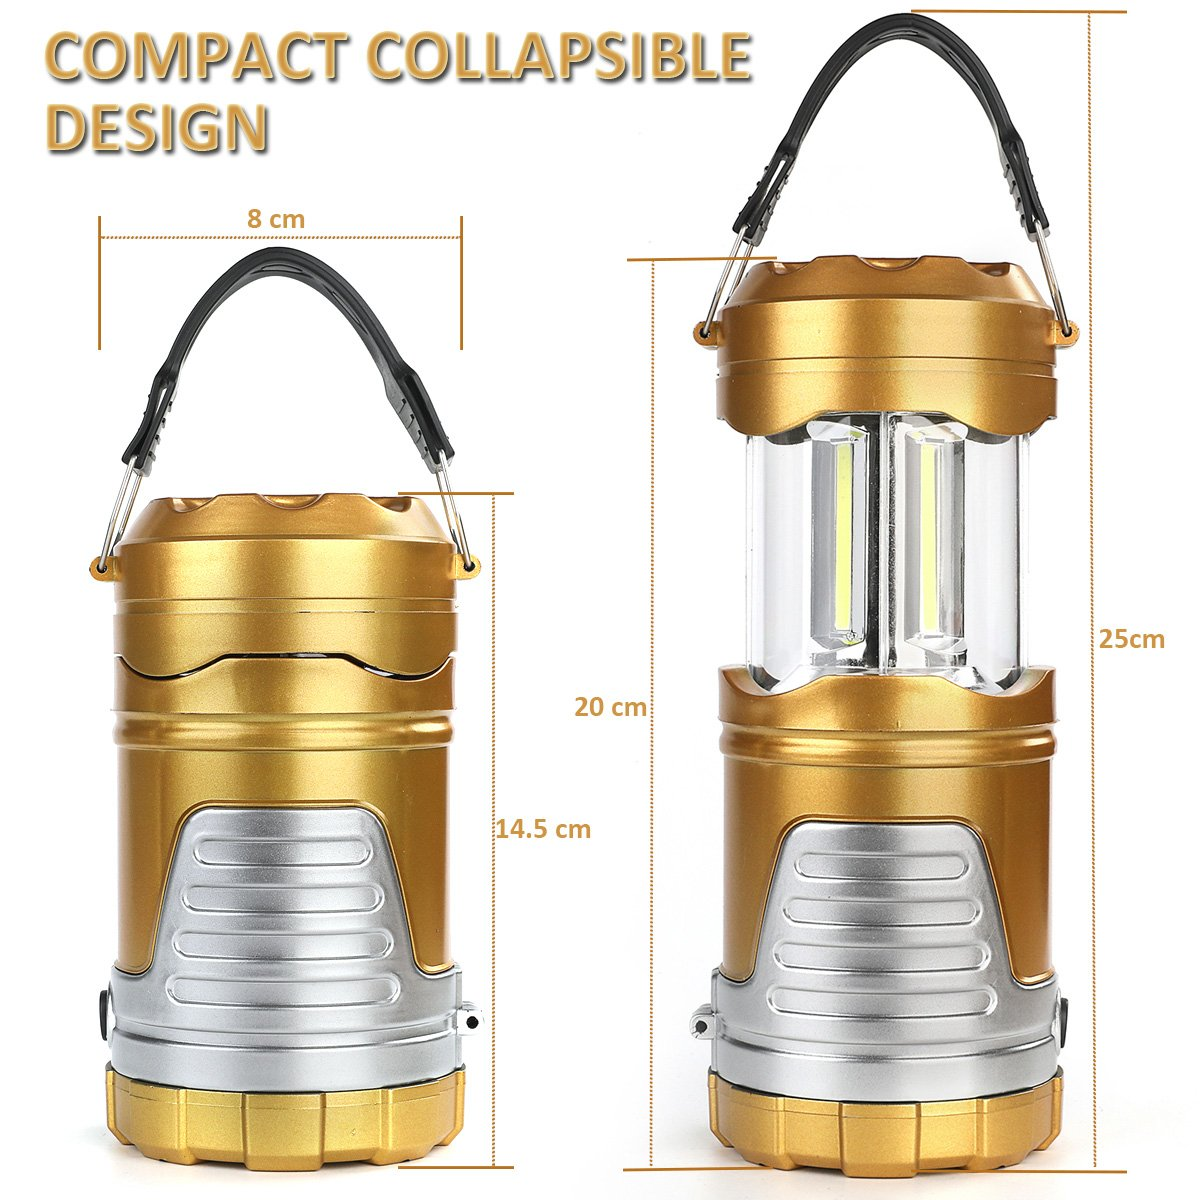 【60% OFF TODAY!!!】Copy of Camp Lantern COB Lights - Changing Flame Light & White Light